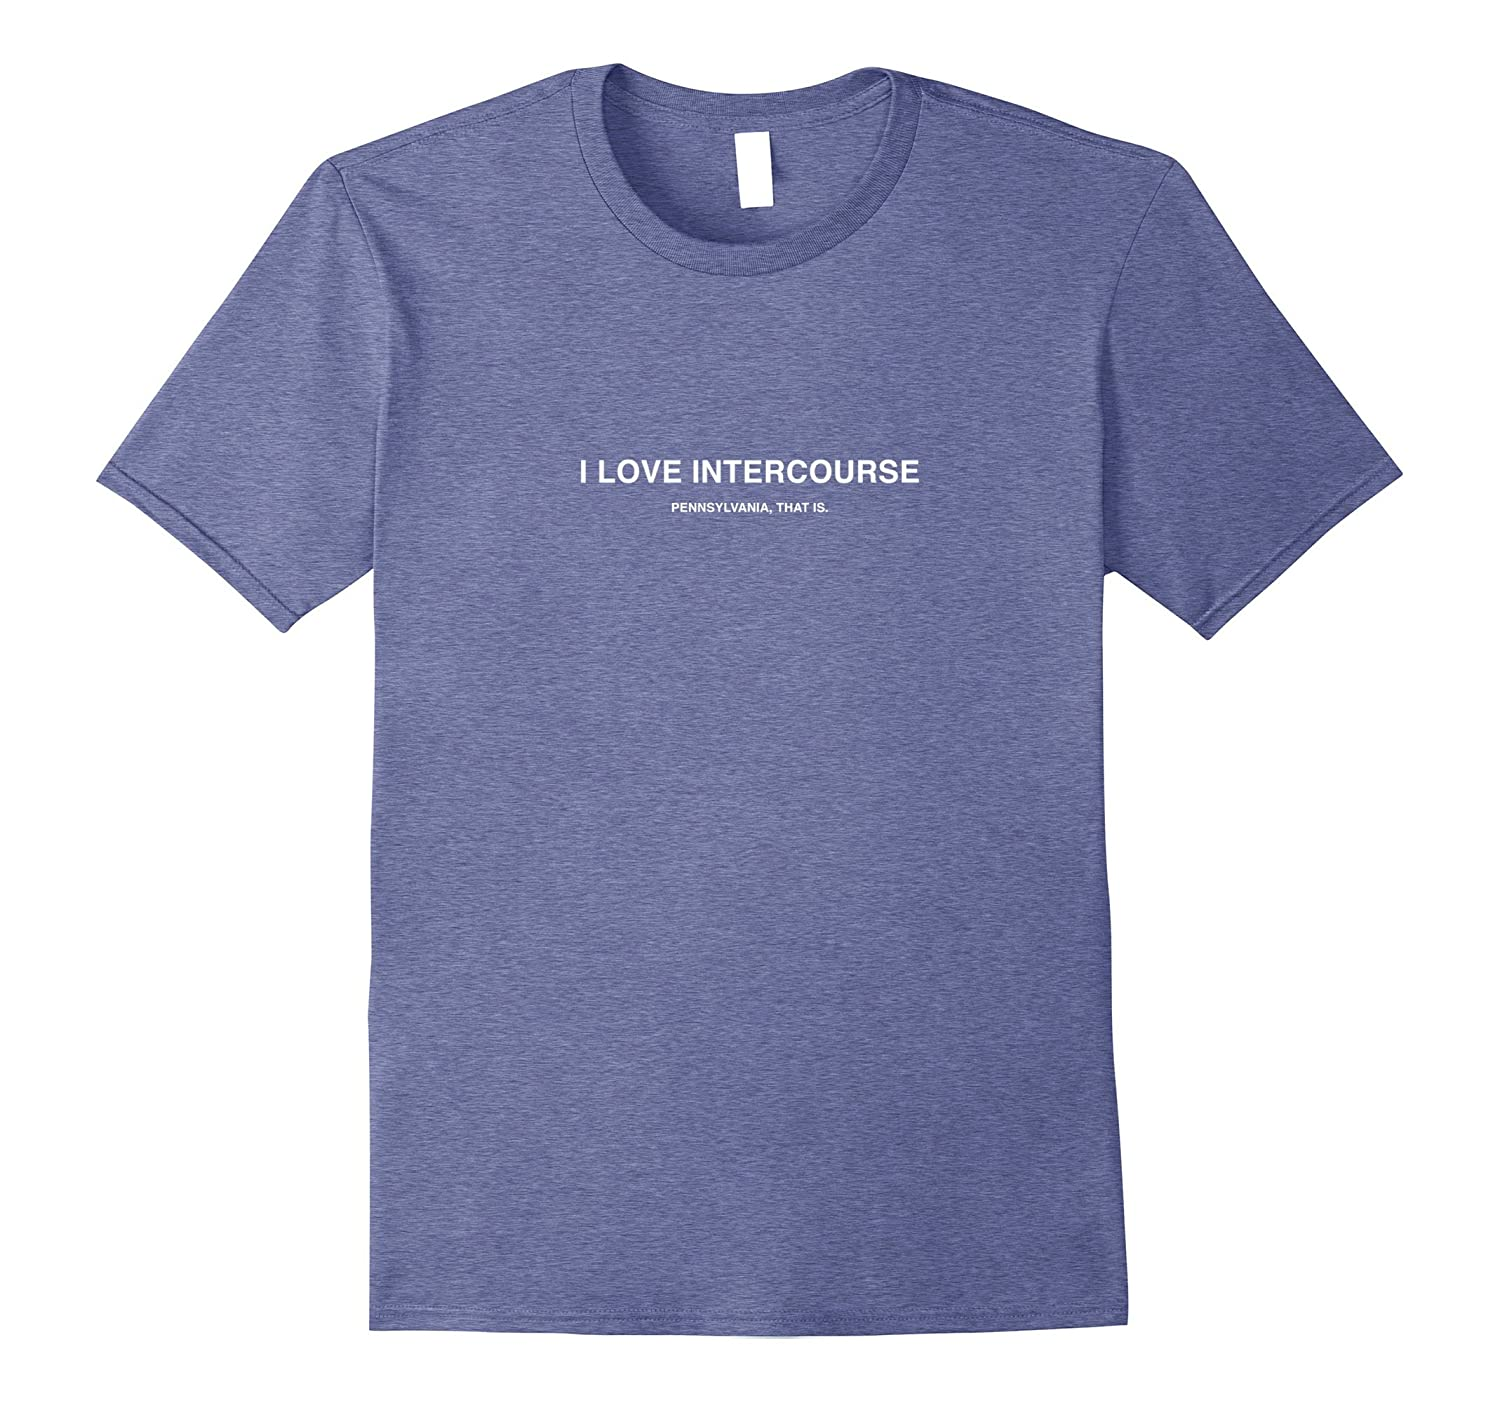 Funny Lancaster PA Intercourse PA Ironic City Name T Shirt-ah my shirt one gift